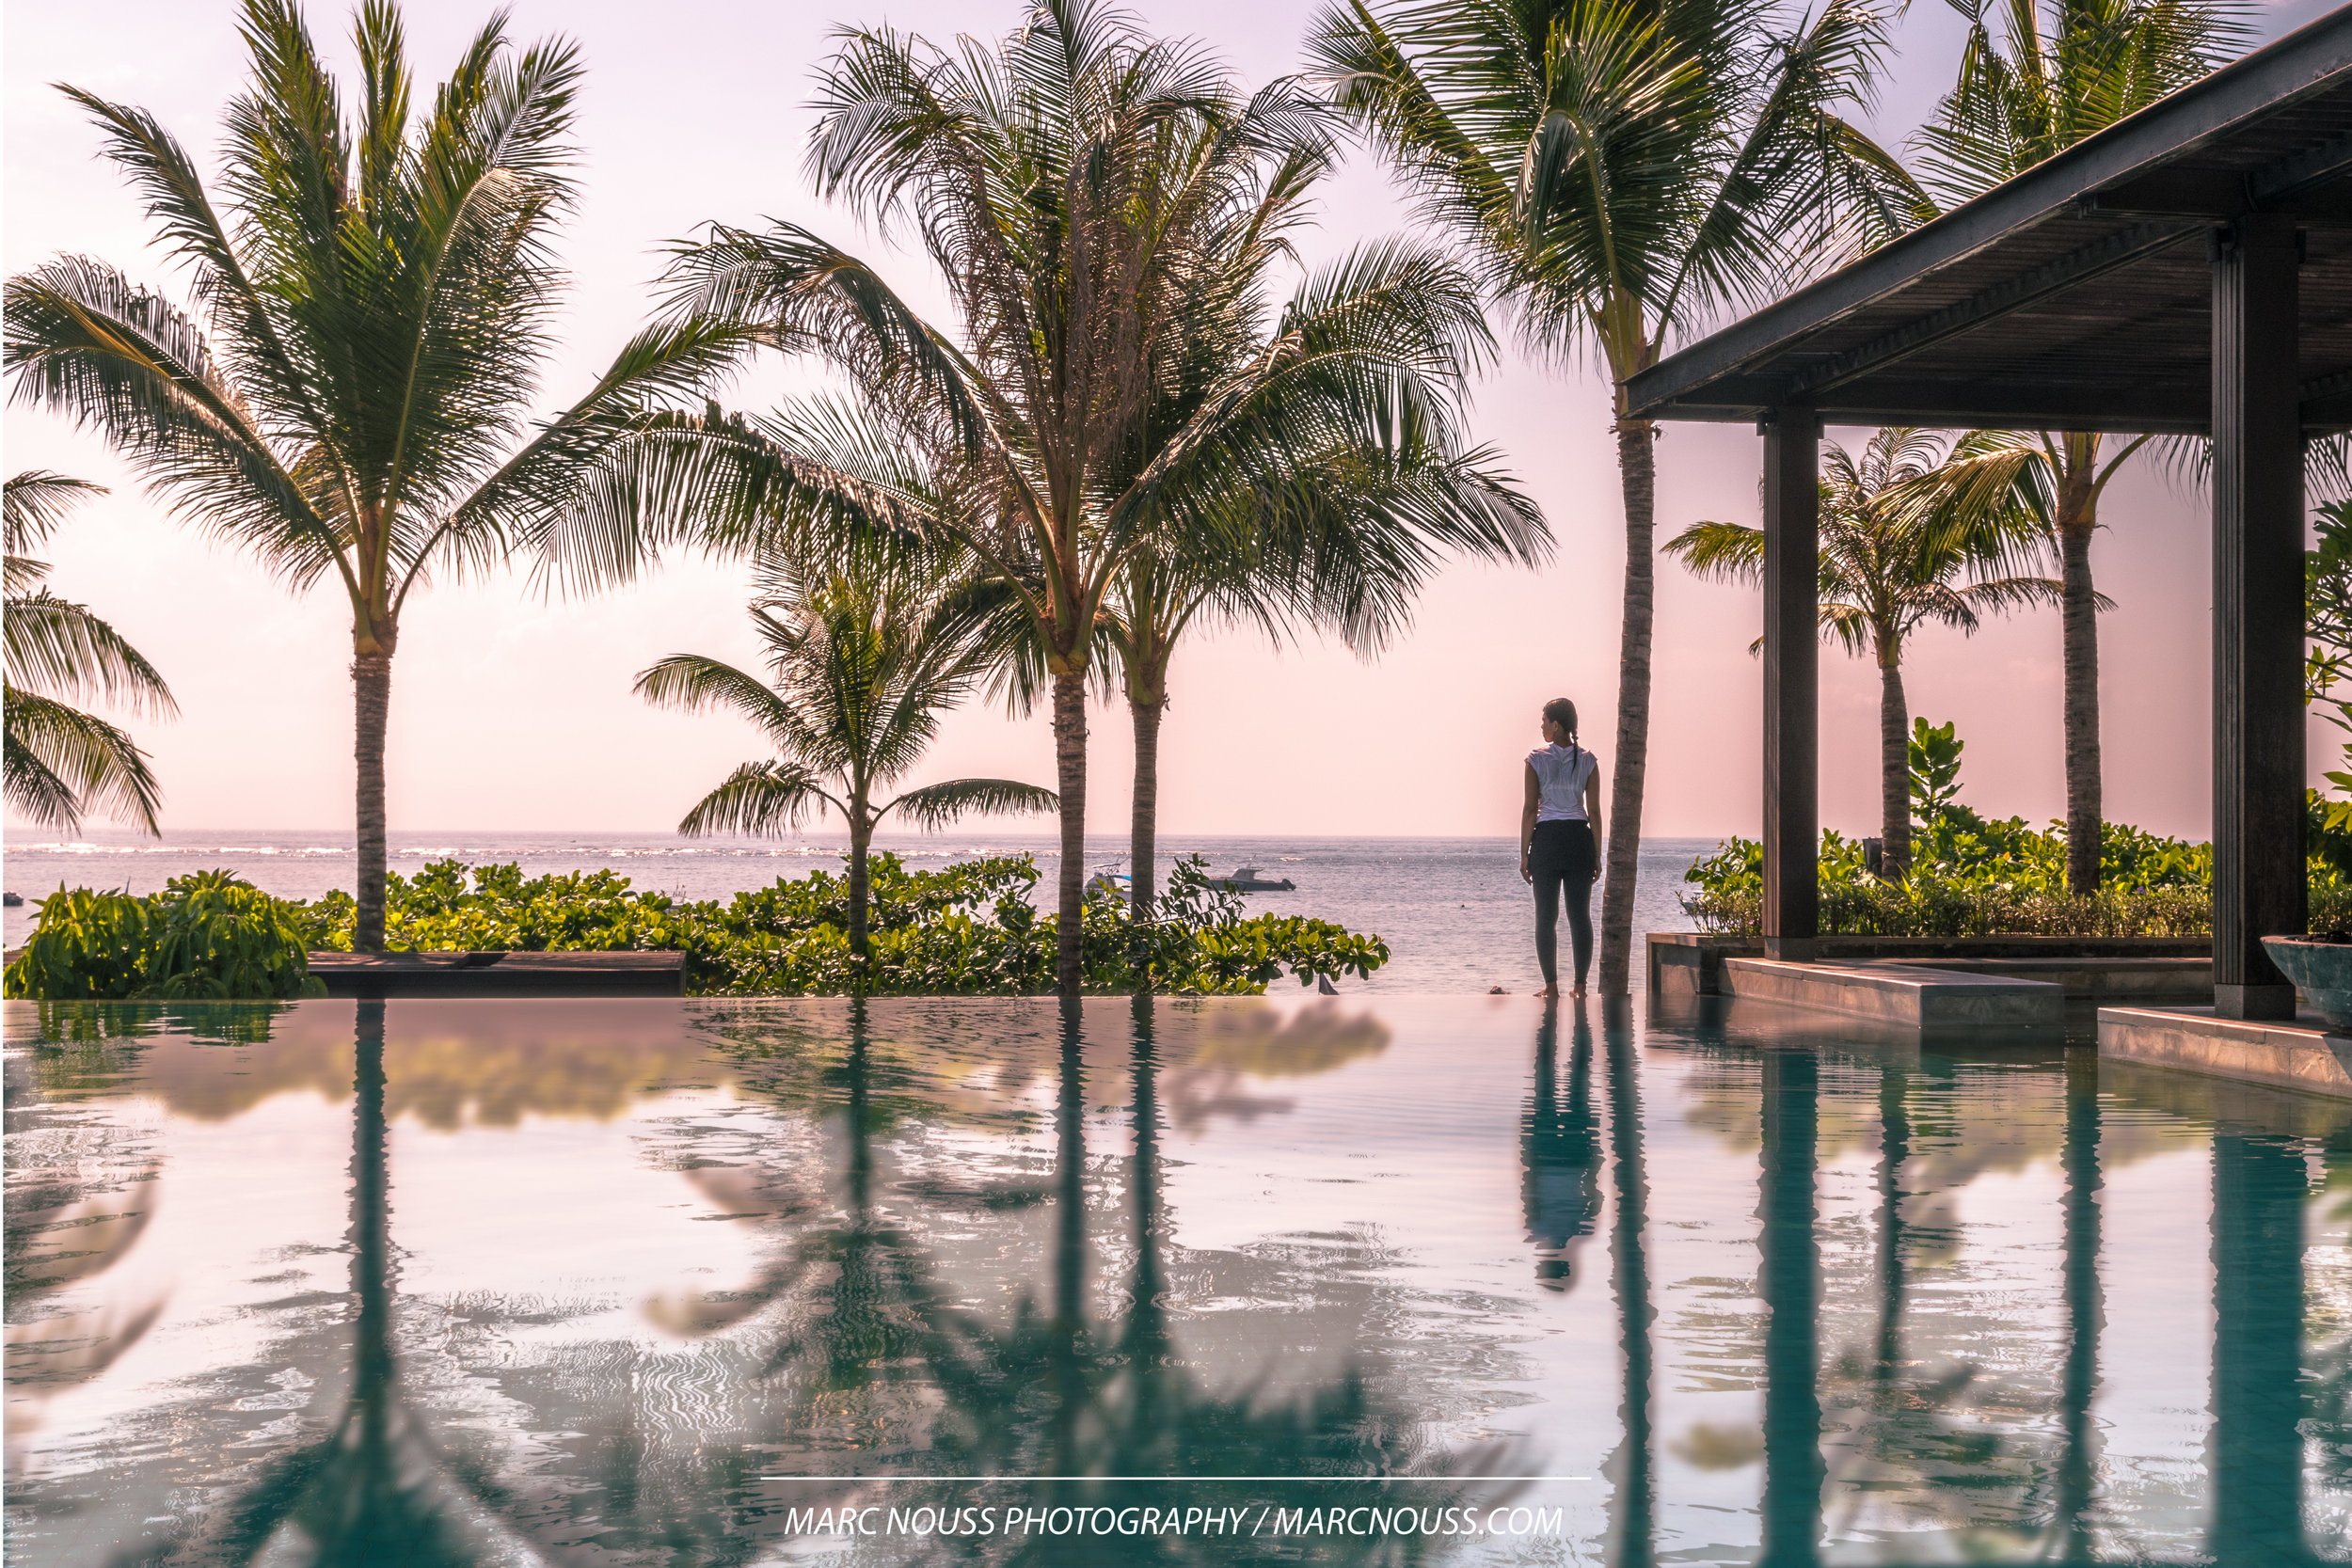 Thanks so much for the stay Fairmont Sanur Beach Bali, it was such an amazing moment!